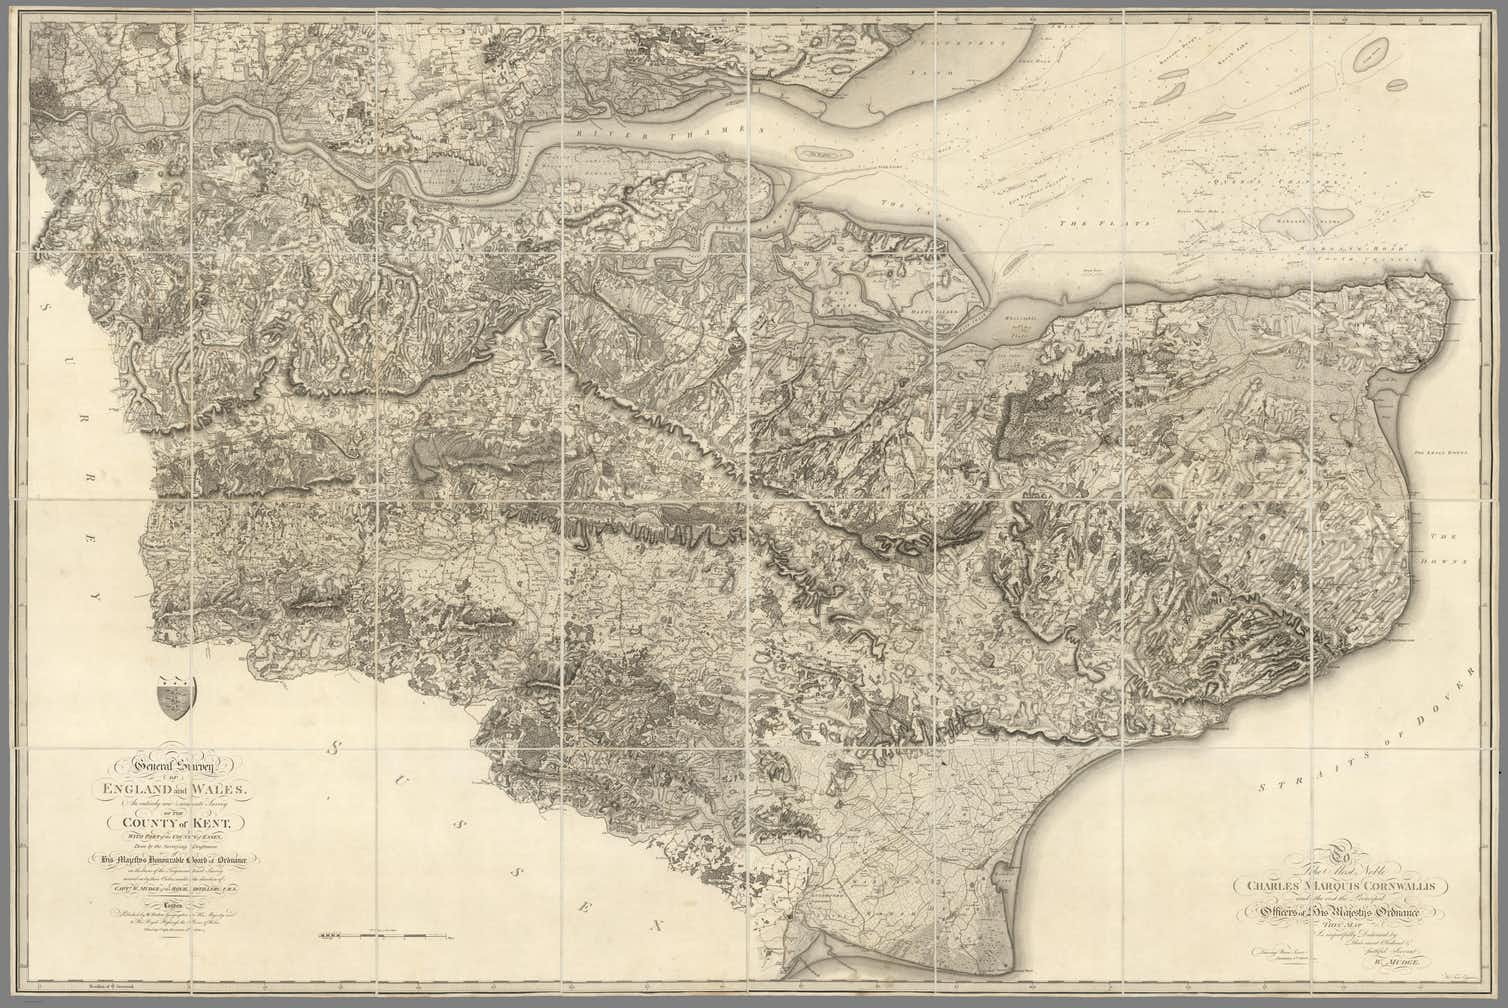 A sepia toned map of the county of Kent